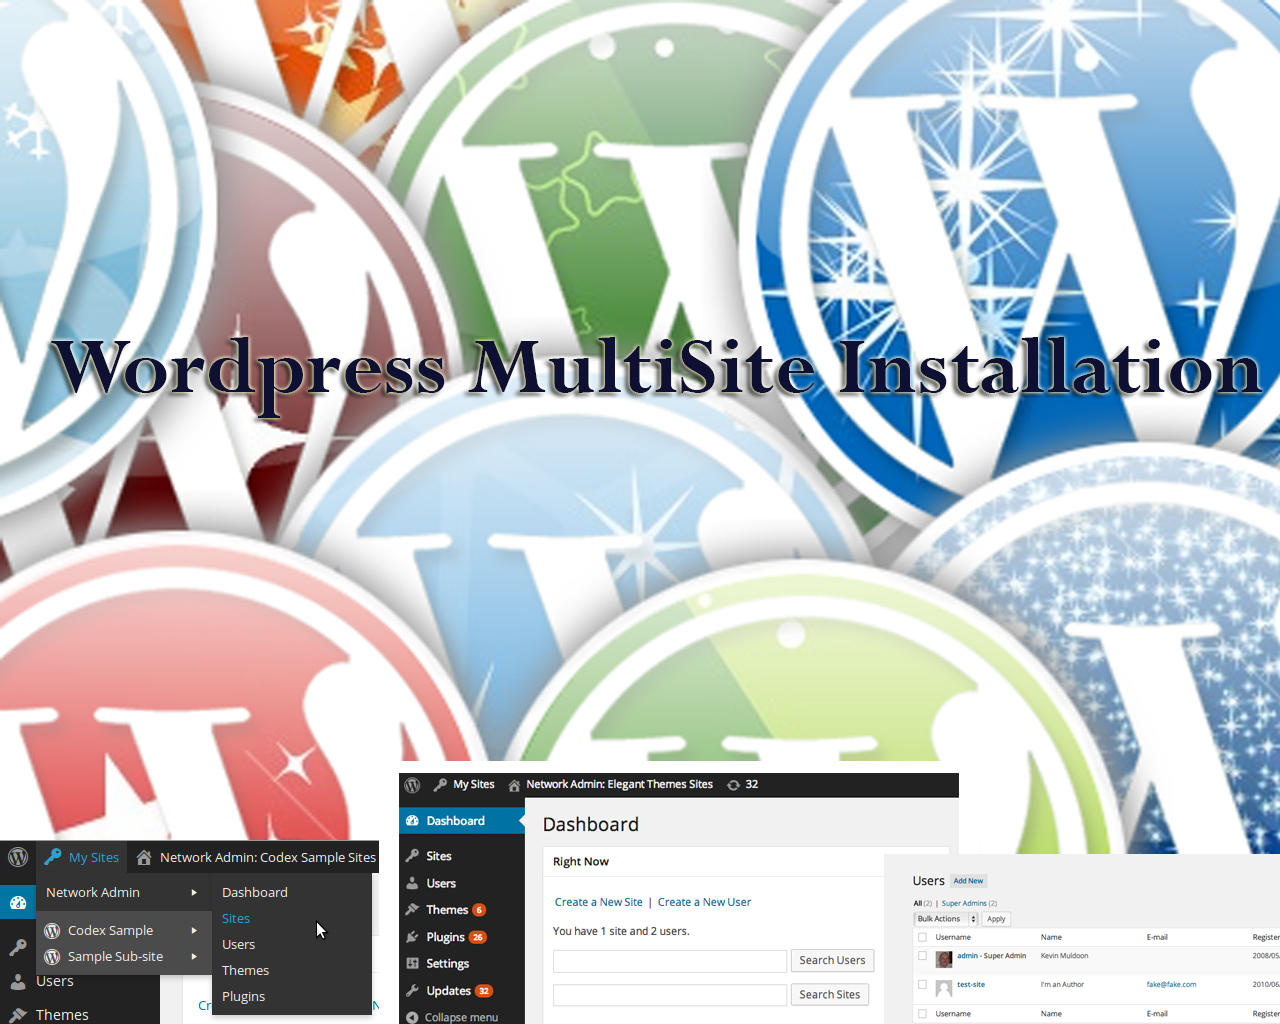 WordPress Multisite Installation With SEO, Load Speed and Better Security by webfulcreations - 63193